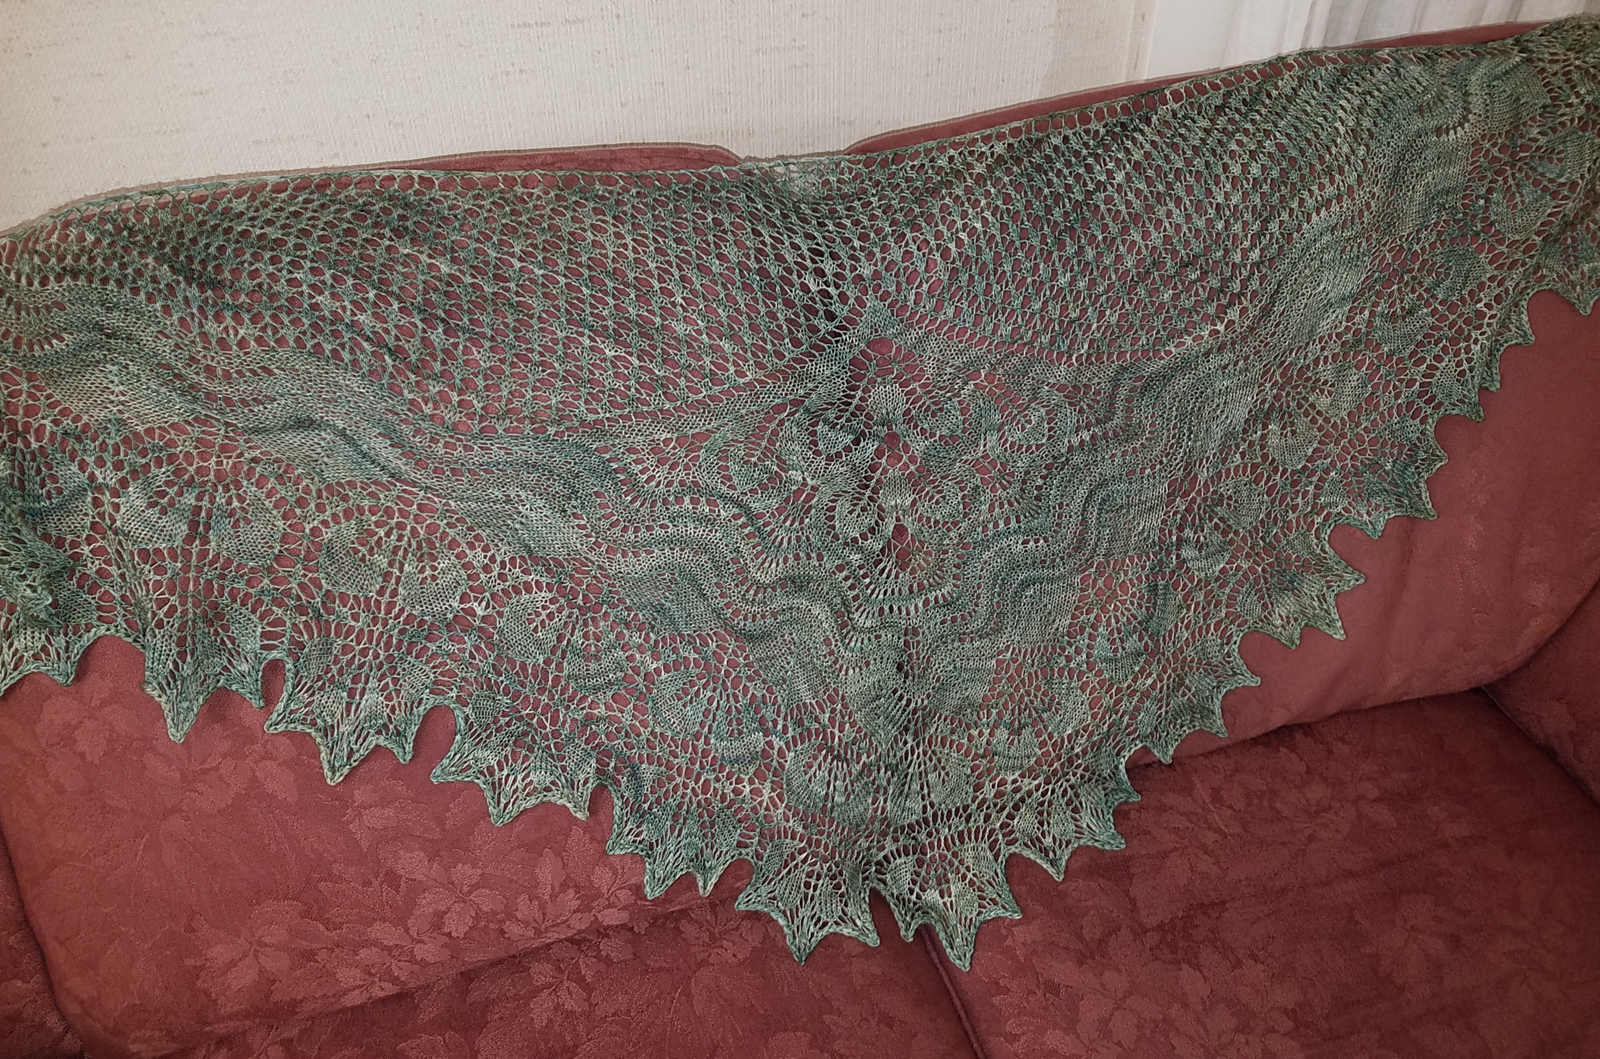 Green laceweight shawl with a leaf pattern